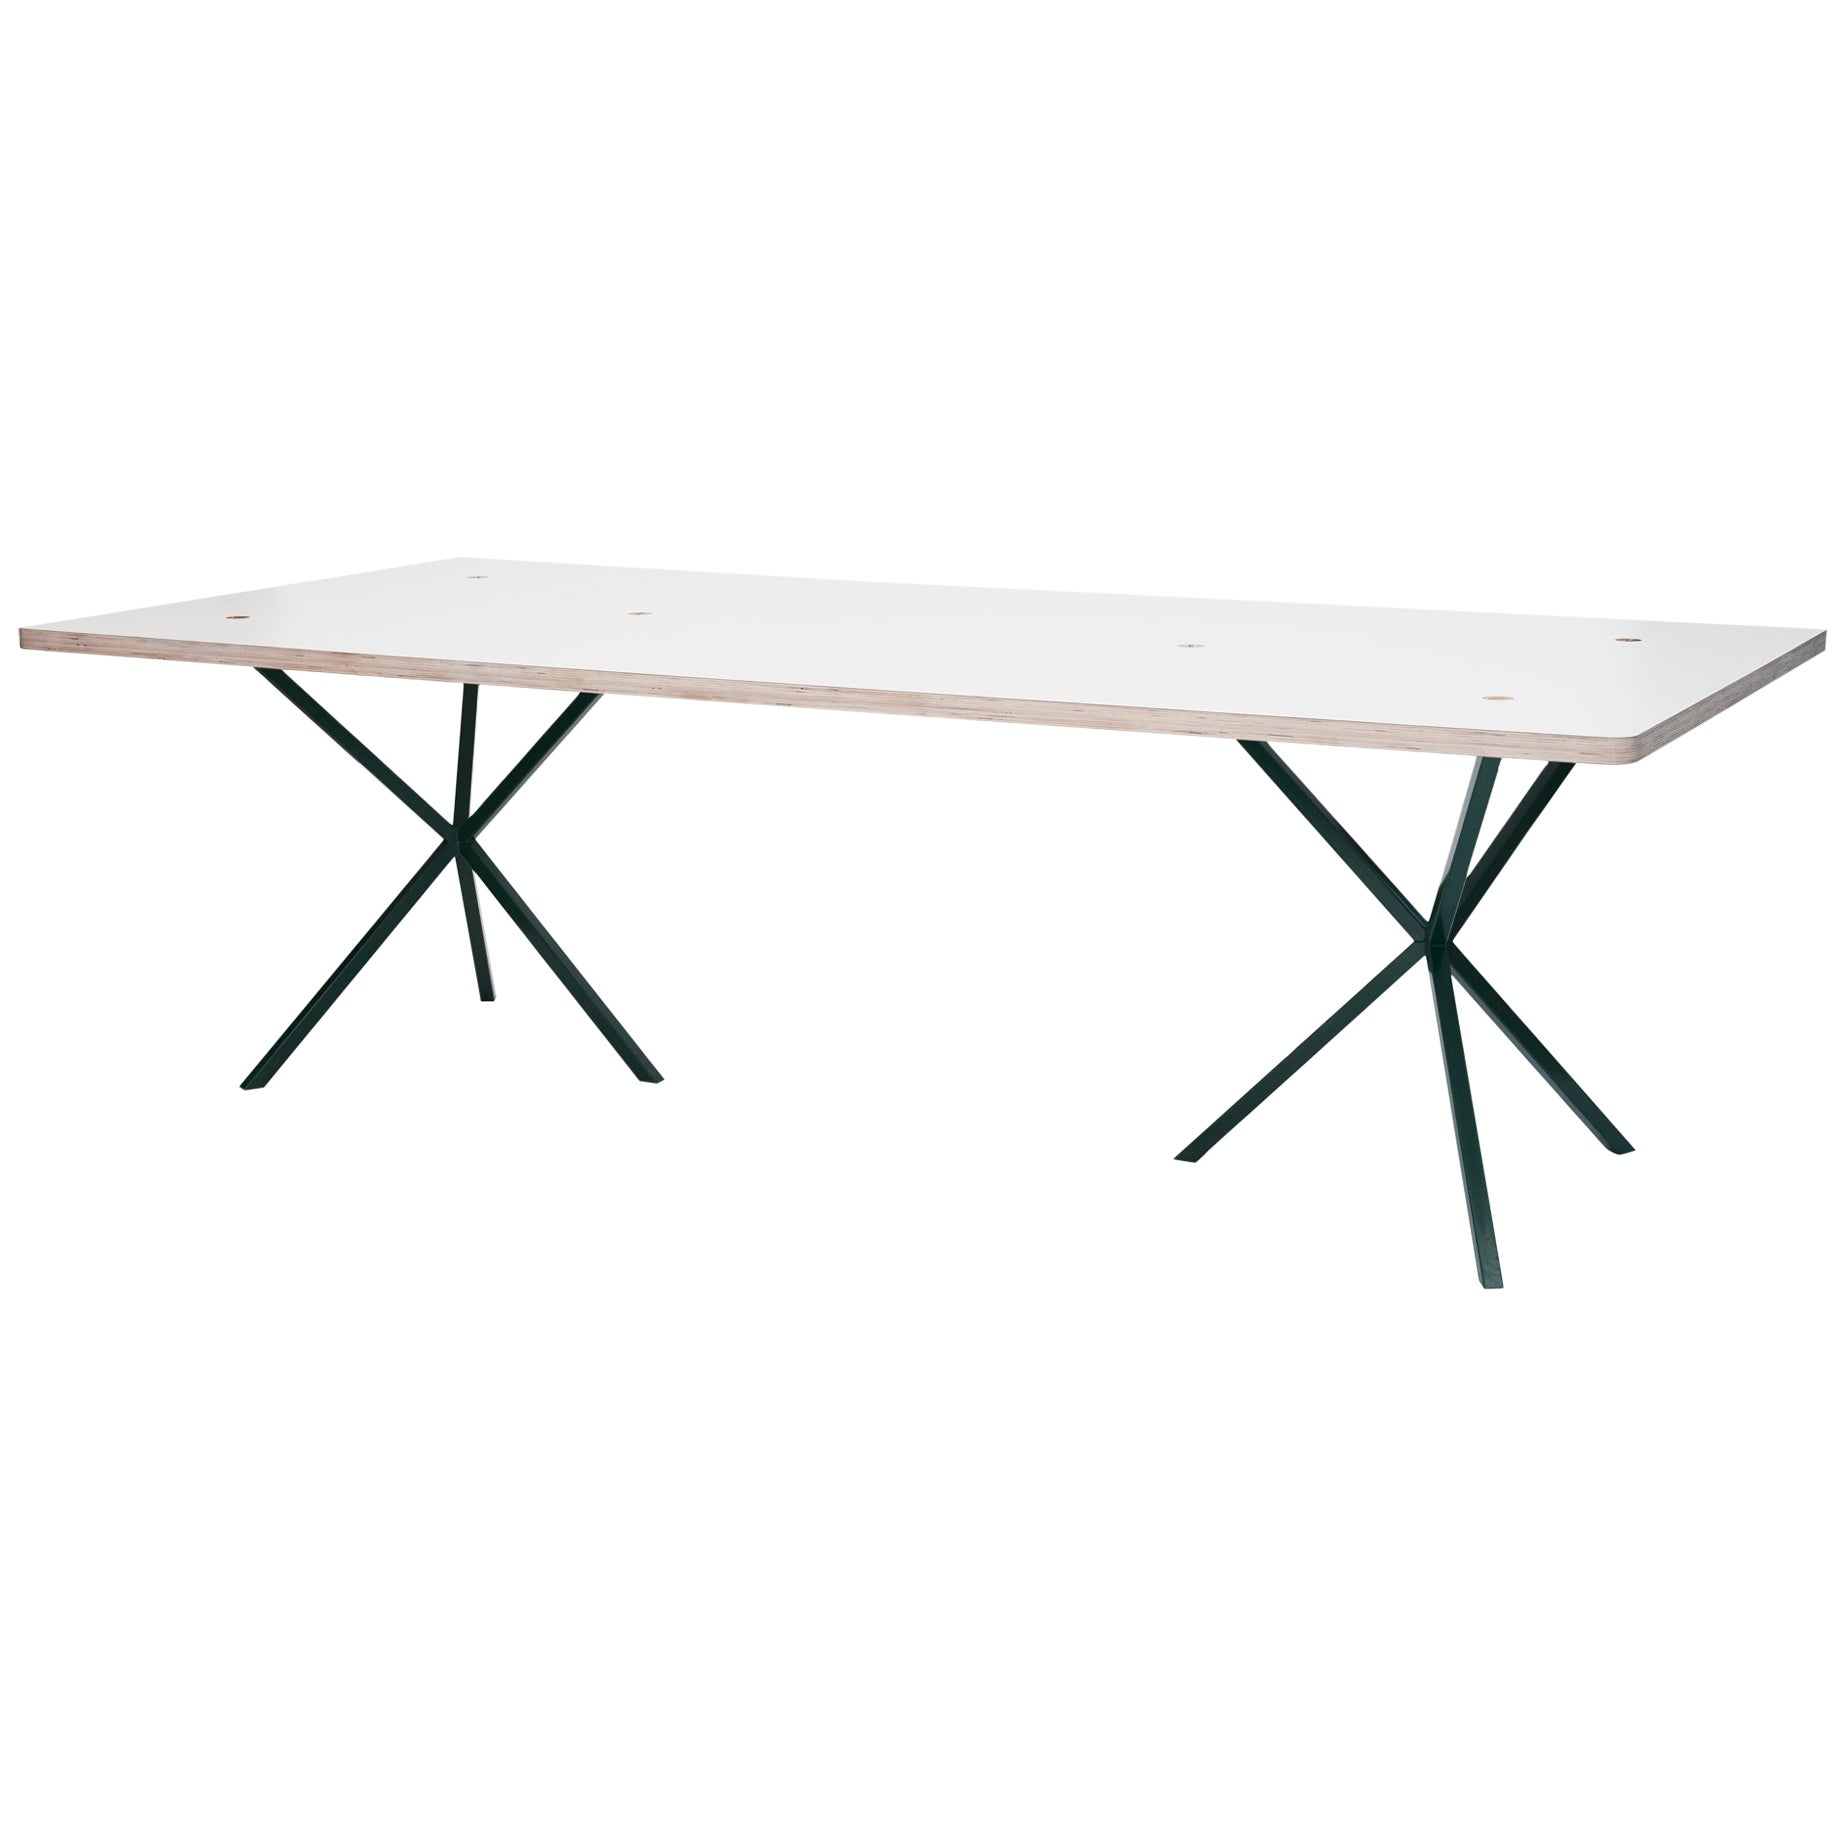 Neb Contemporary Dining Table with Laminate Top and Metal Legs by Per Soderberg